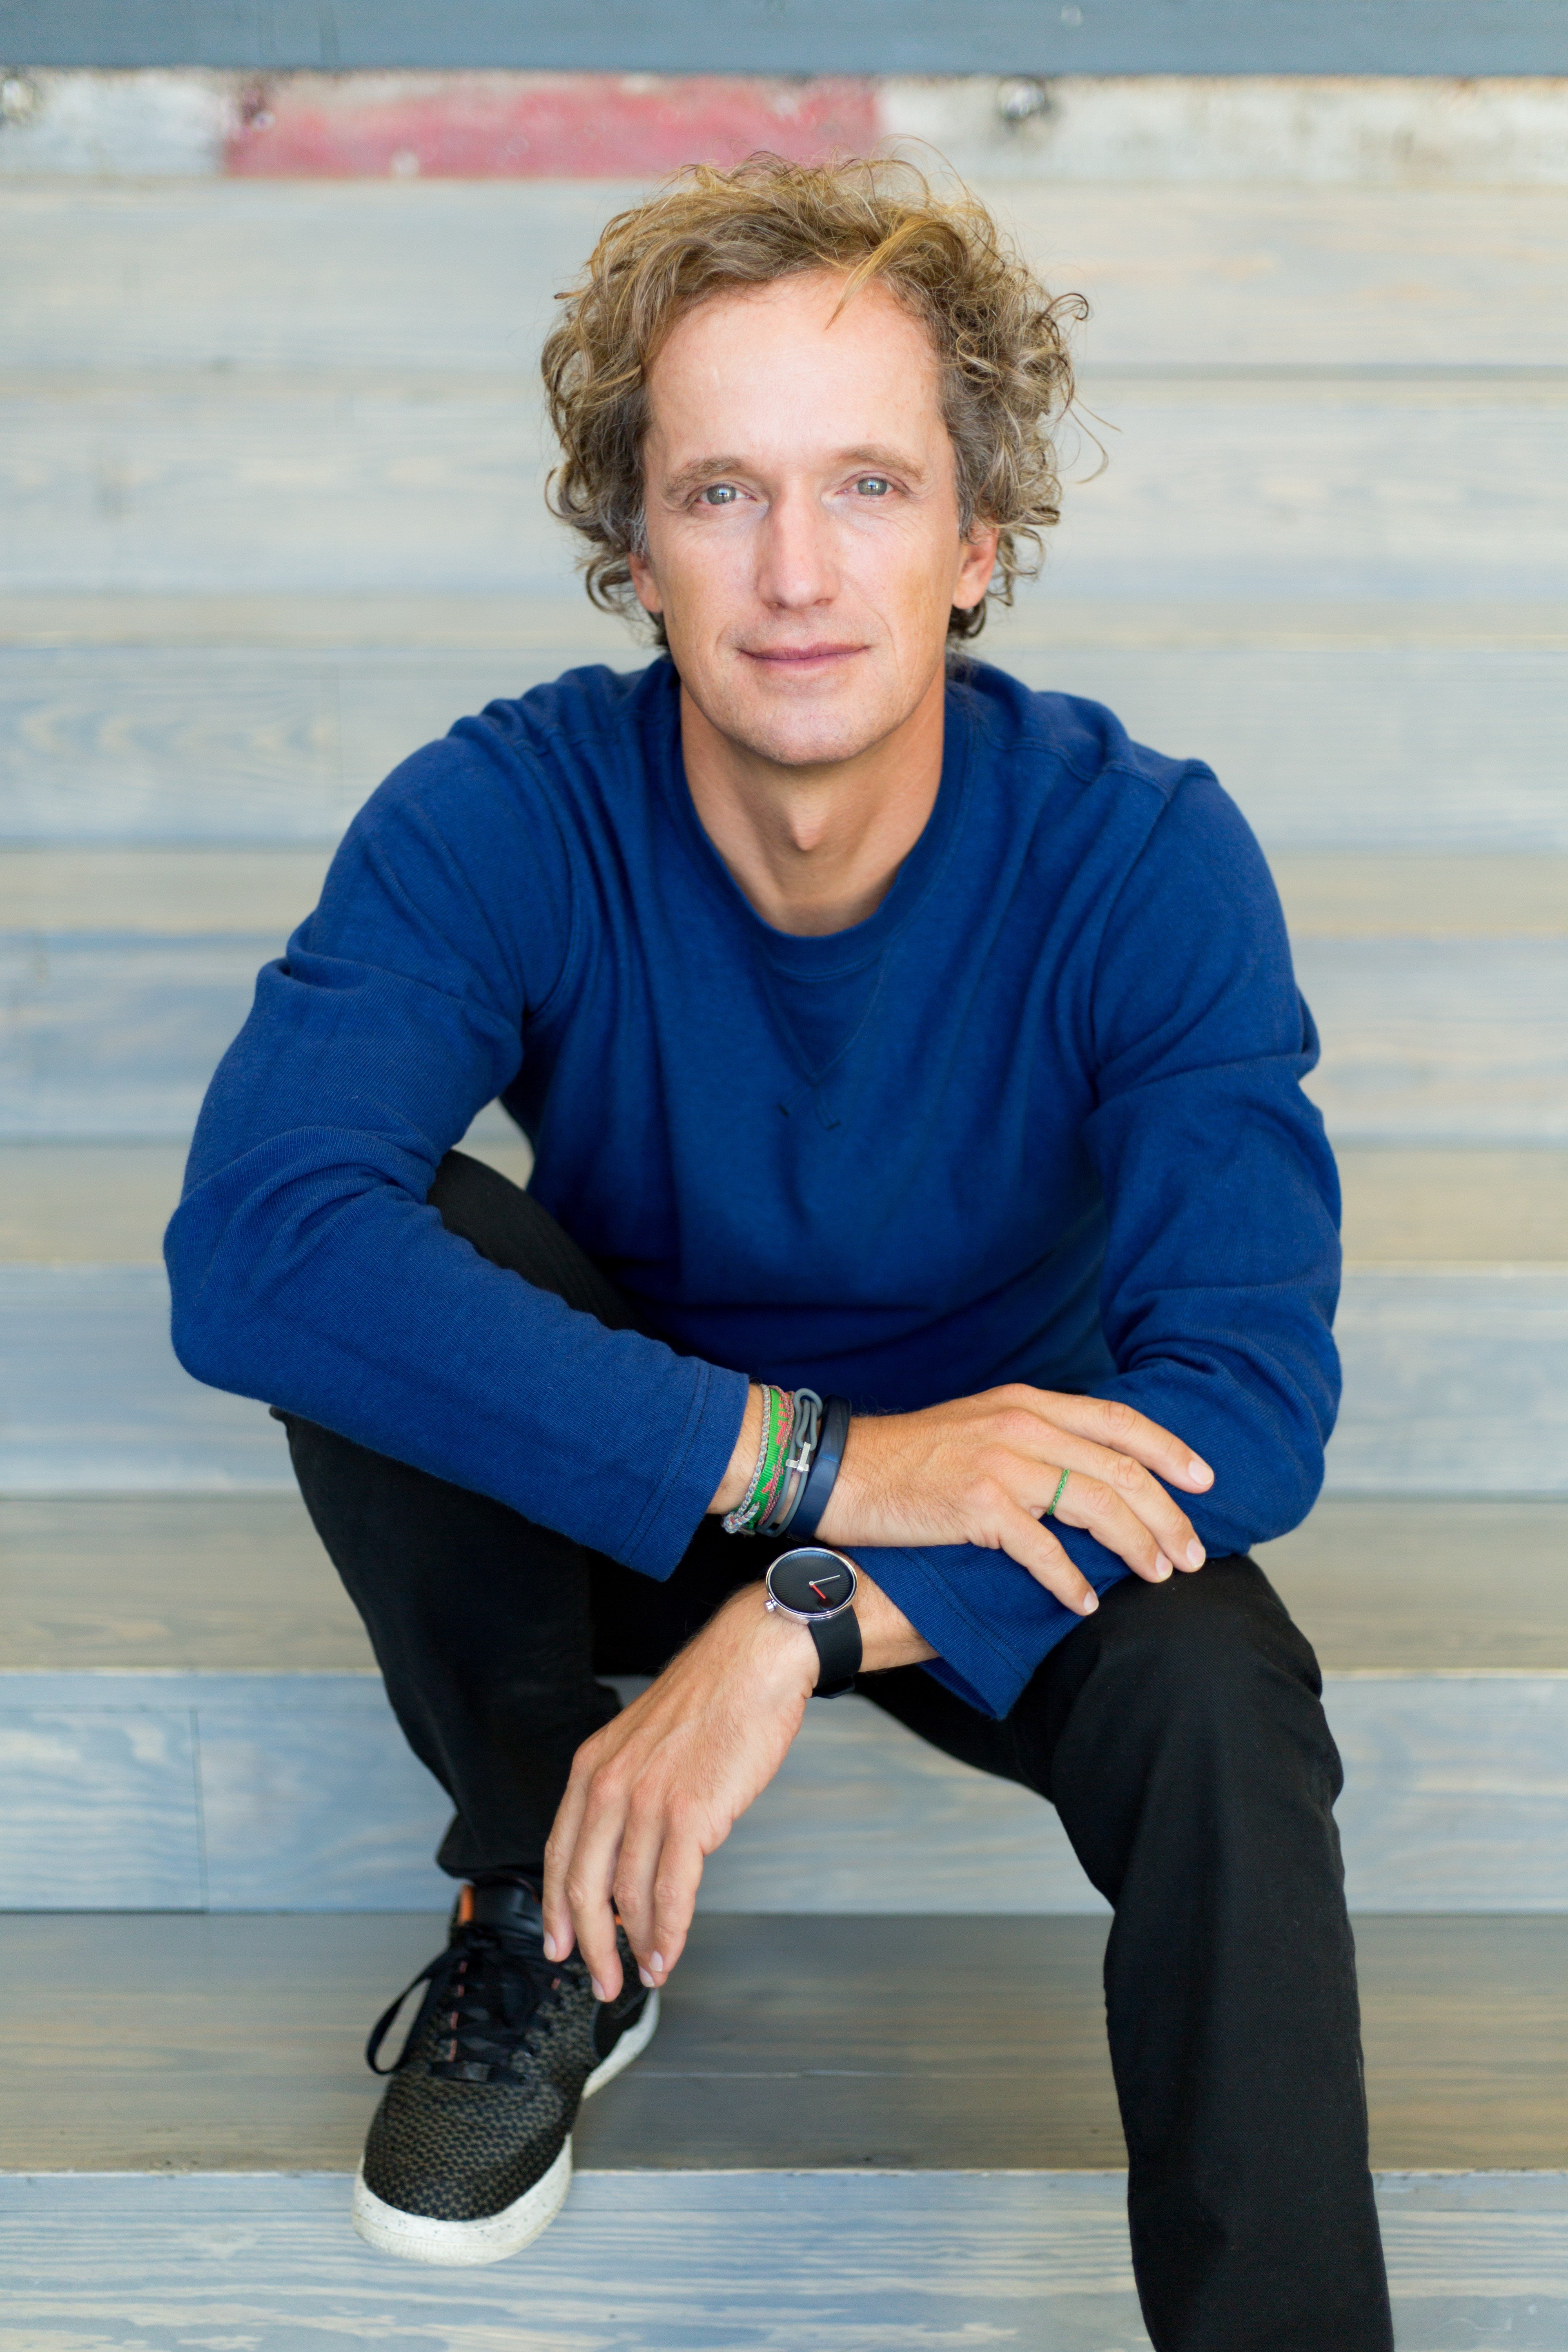 FuseProject's Yves Behar is just one of high-profile designers Plant Prefab has recruited to develop its high-end modular homes. Photo: Justin Buell